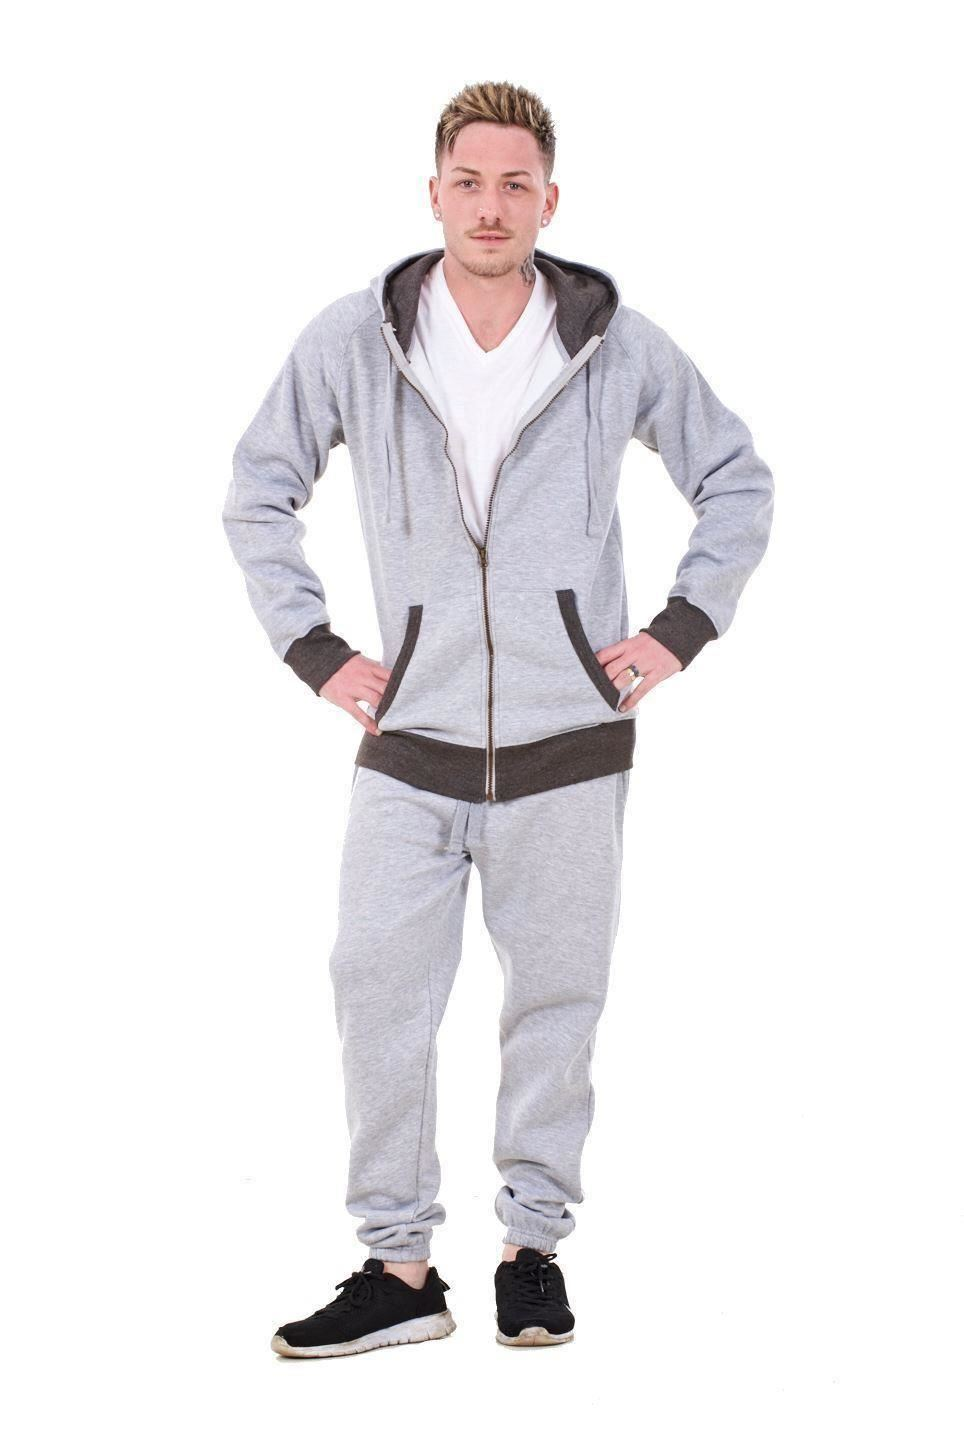 New-Mens-Tracksuit-Branded-Fleece-Hooded-Zipper-Cotton-Jogging-Bottoms-S-to-XXL thumbnail 7